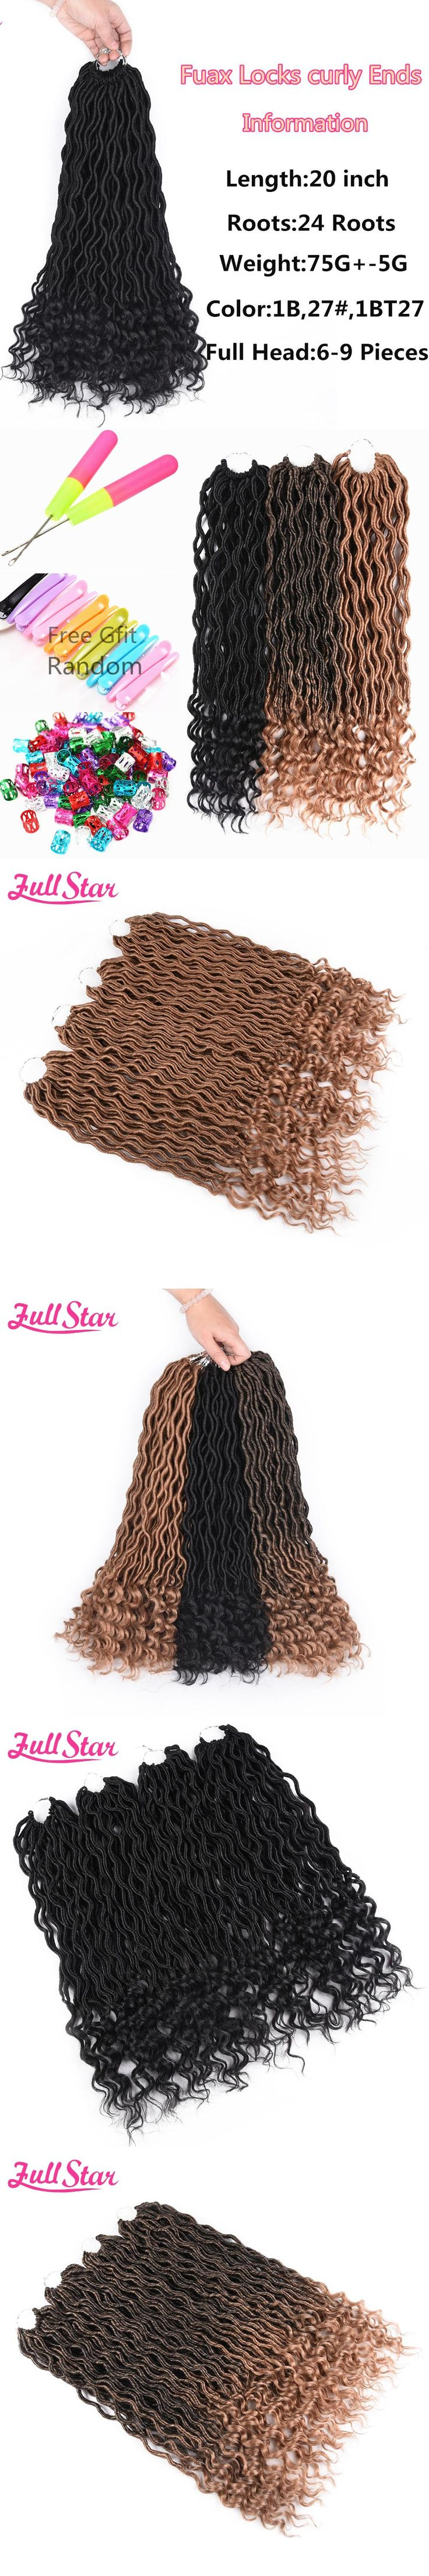 Full Star 20 inch Faux Locs Curly Crochet Hair 24 Strands Synthetic Crotchet Braids Hair Extensions for Black Women 1-6pack/lot